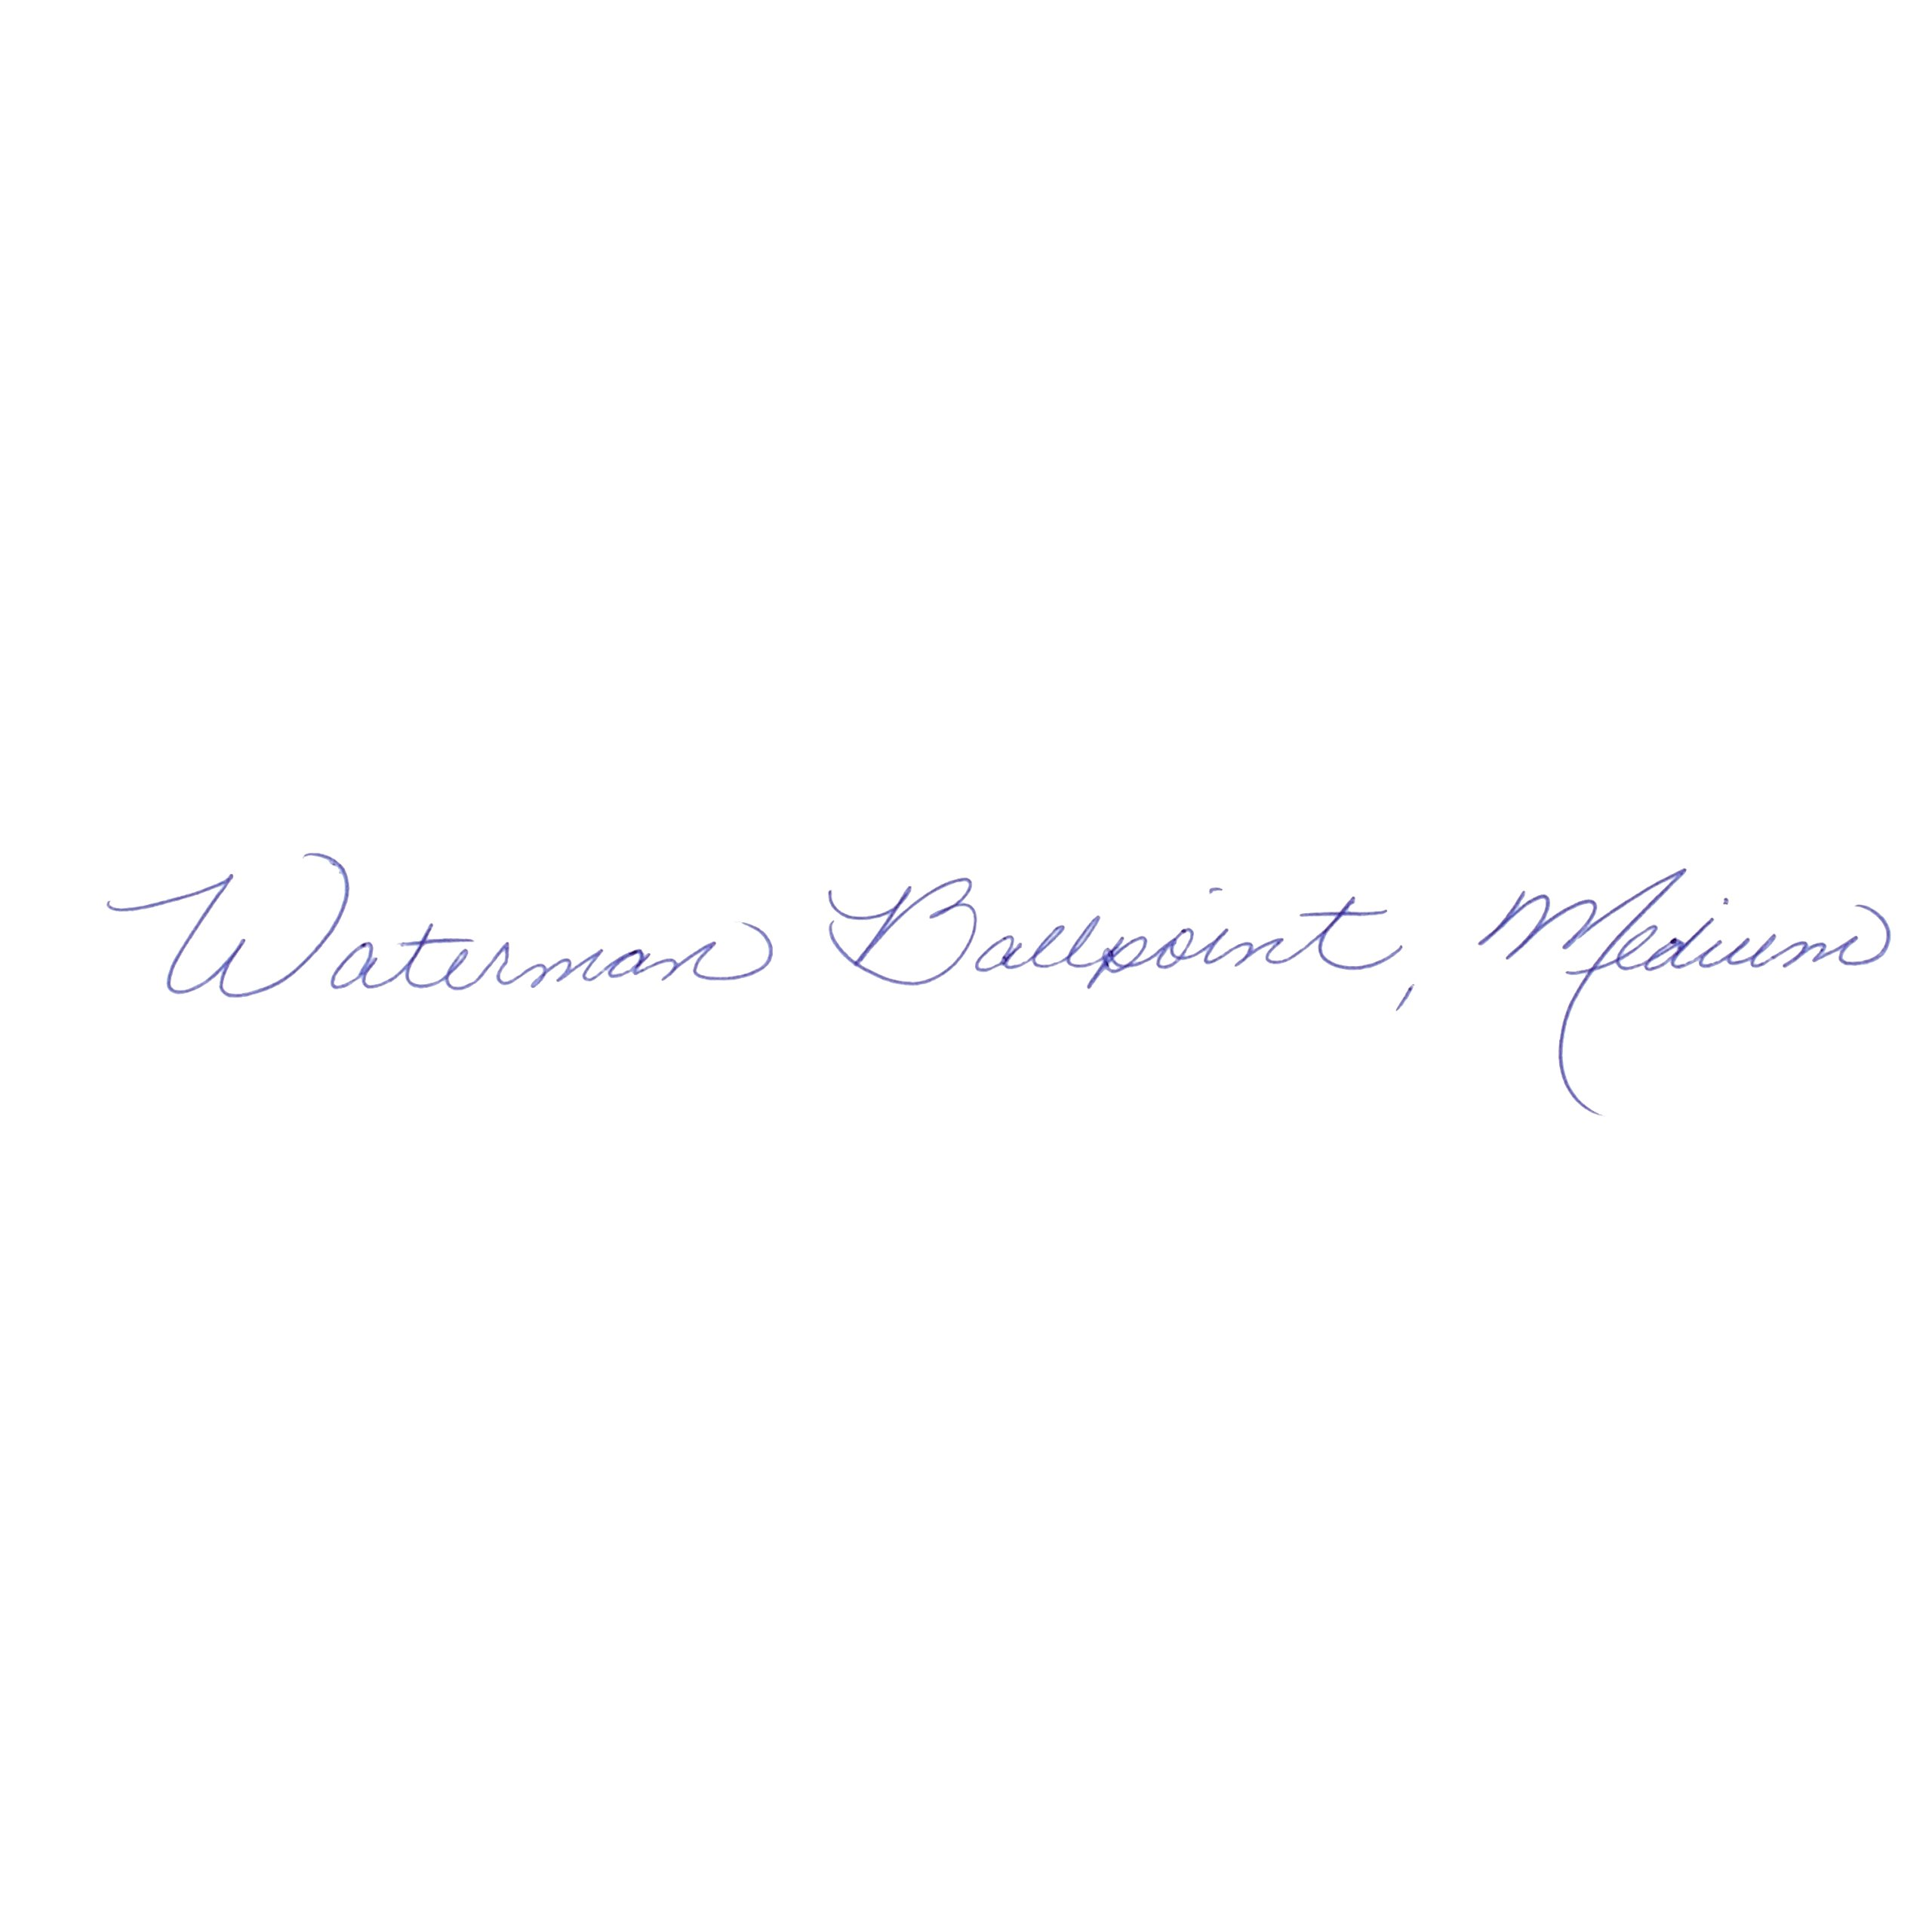 Waterman Expert Ballpoint Pen, Gloss Black with Chrome Trim, Medium Point with Blue Ink Cartridge, Gift Box by Waterman (Image #5)